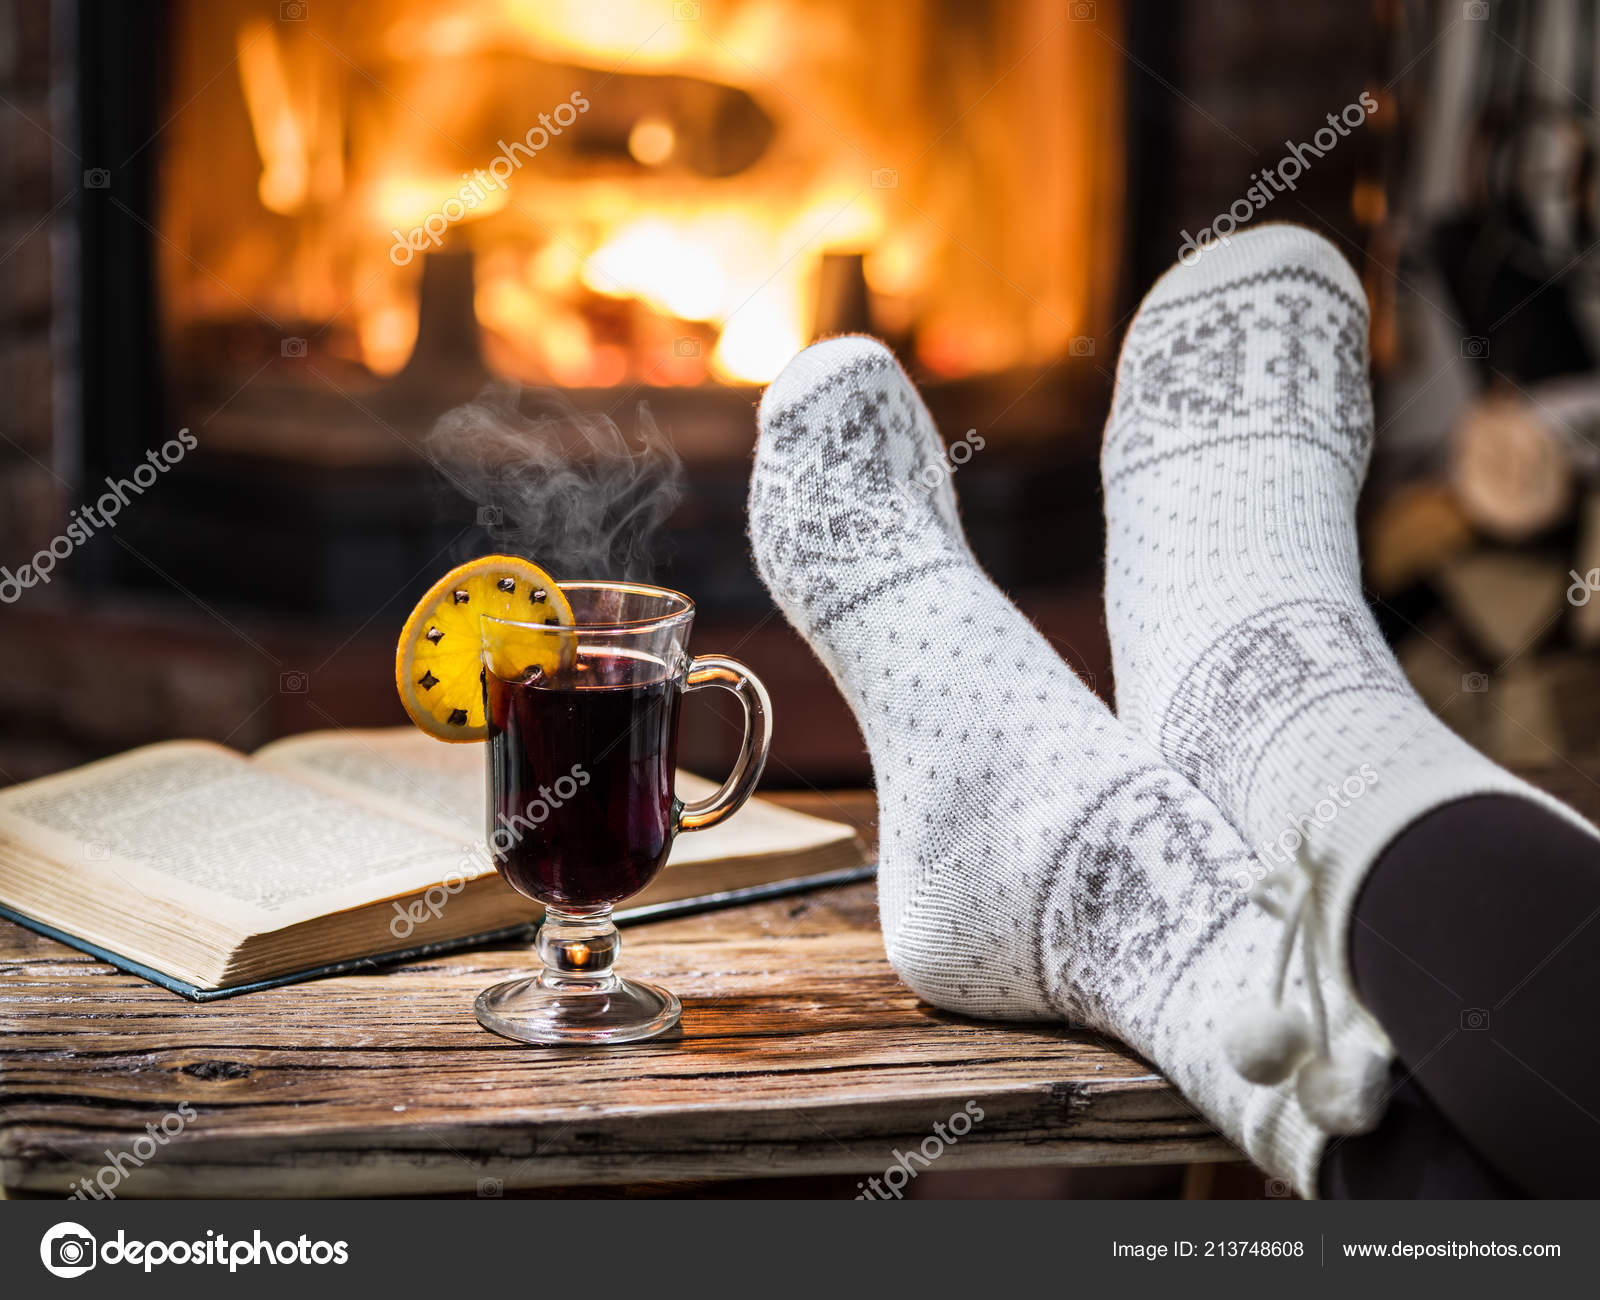 Warming Relaxing Fireplace Woman Feet Cup Hot Wine Front